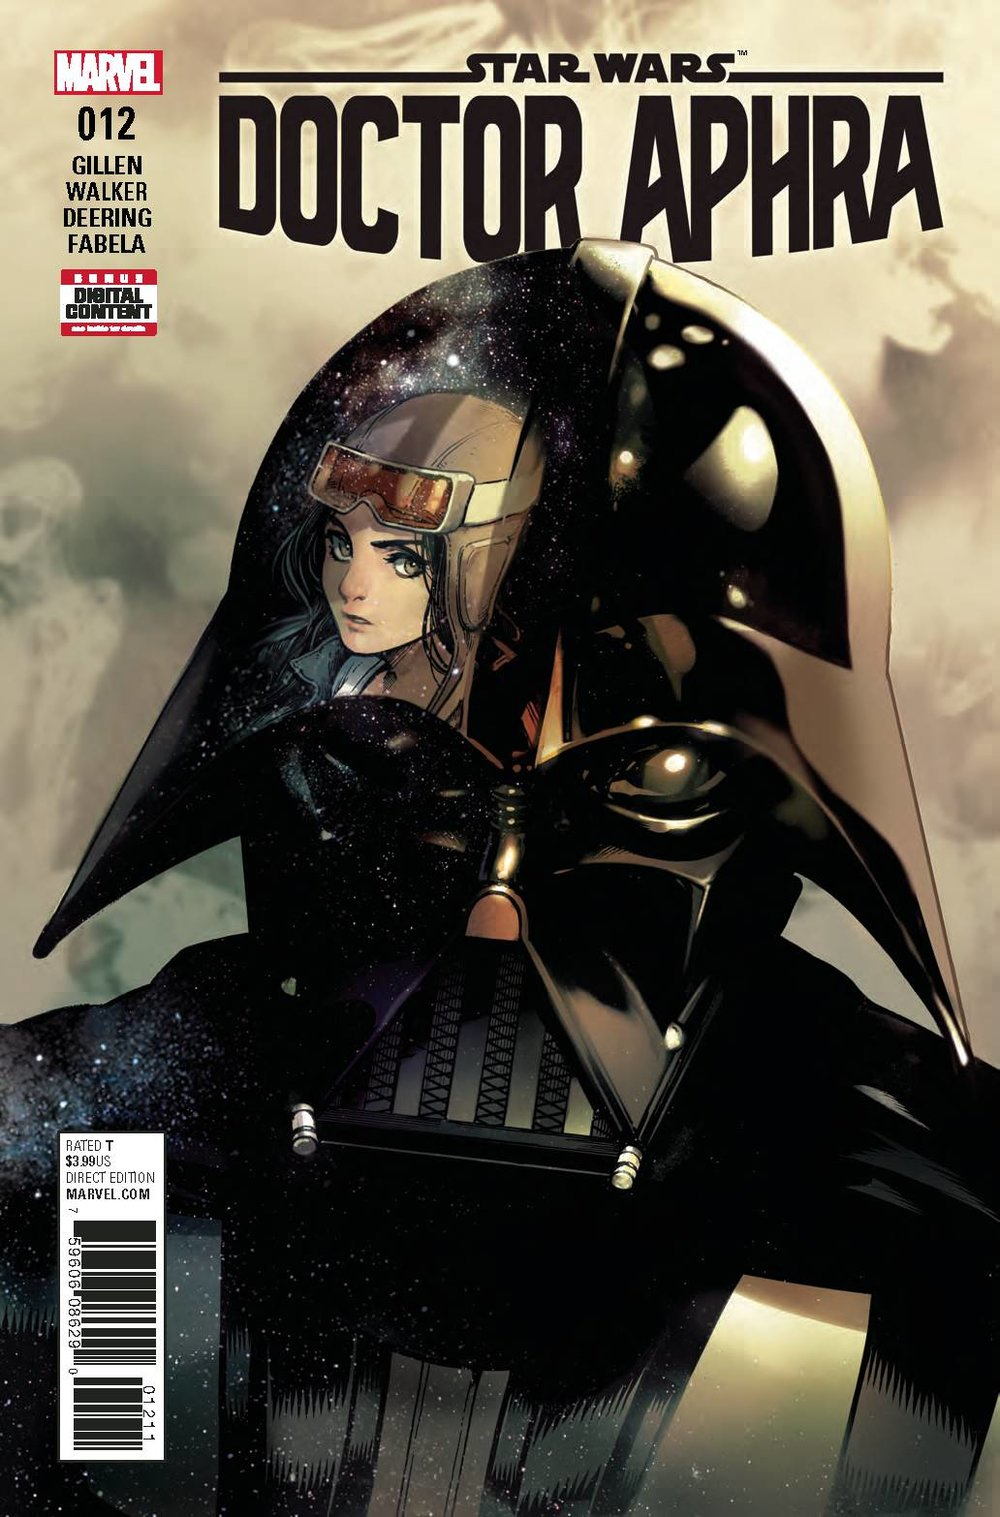 STAR WARS DOCTOR APHRA 12.jpg